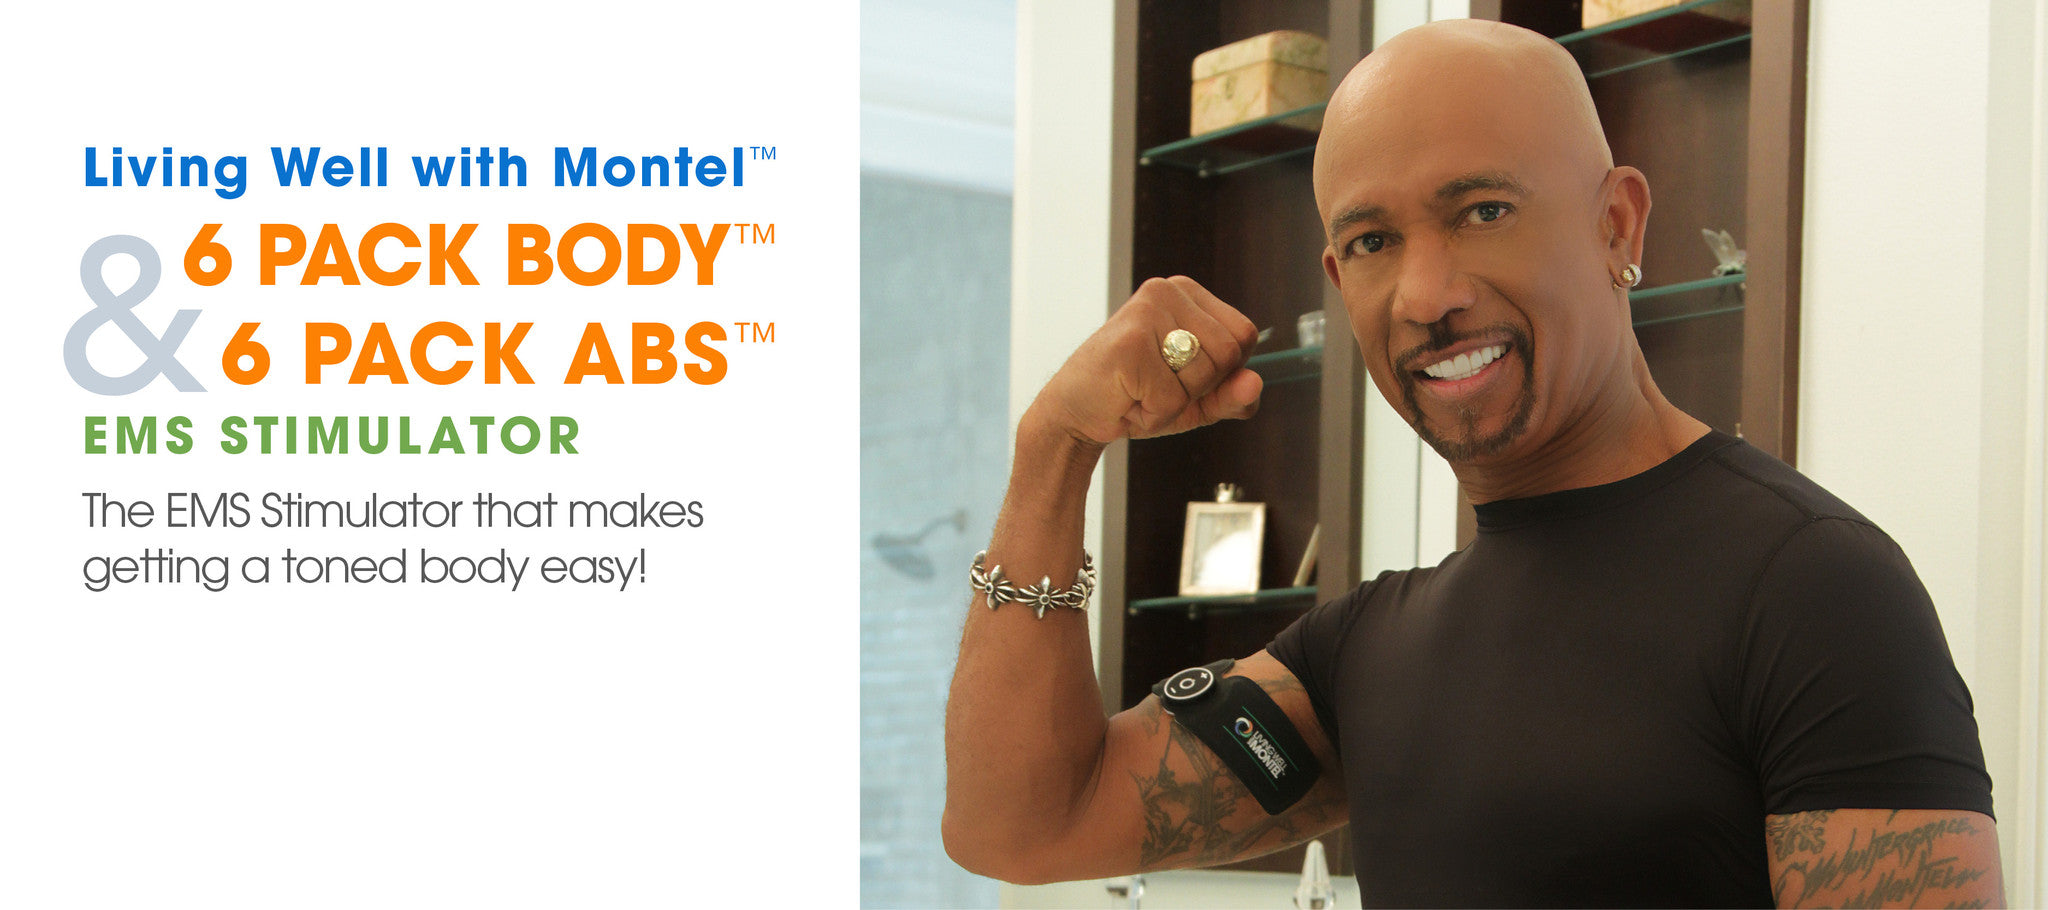 Living Well with Montel Products - Fitness